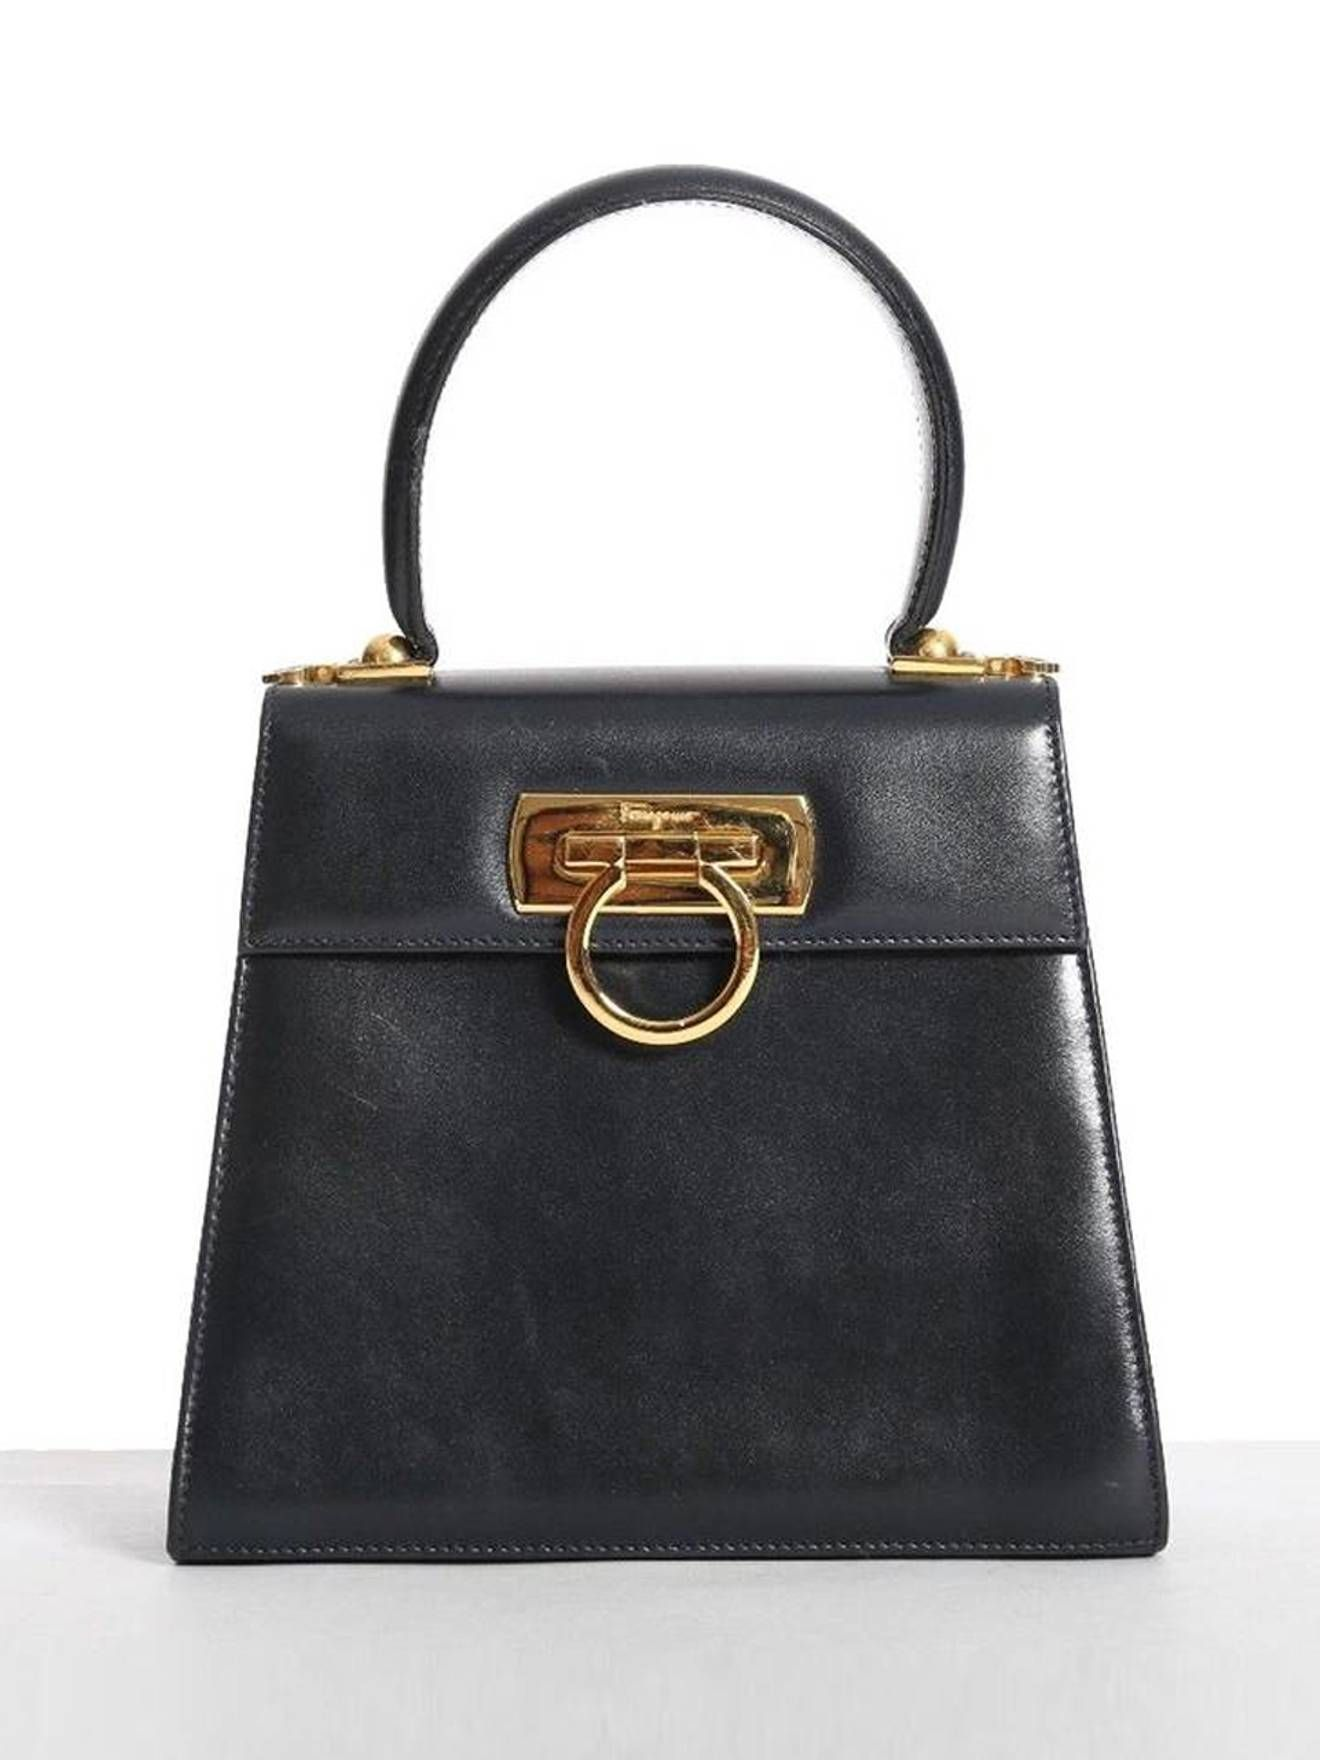 Ferragamo vintage SALVATORE FERRAGAMO Gancini Vara black leather gold  buckle structure bag Size One Size 80012a1739654